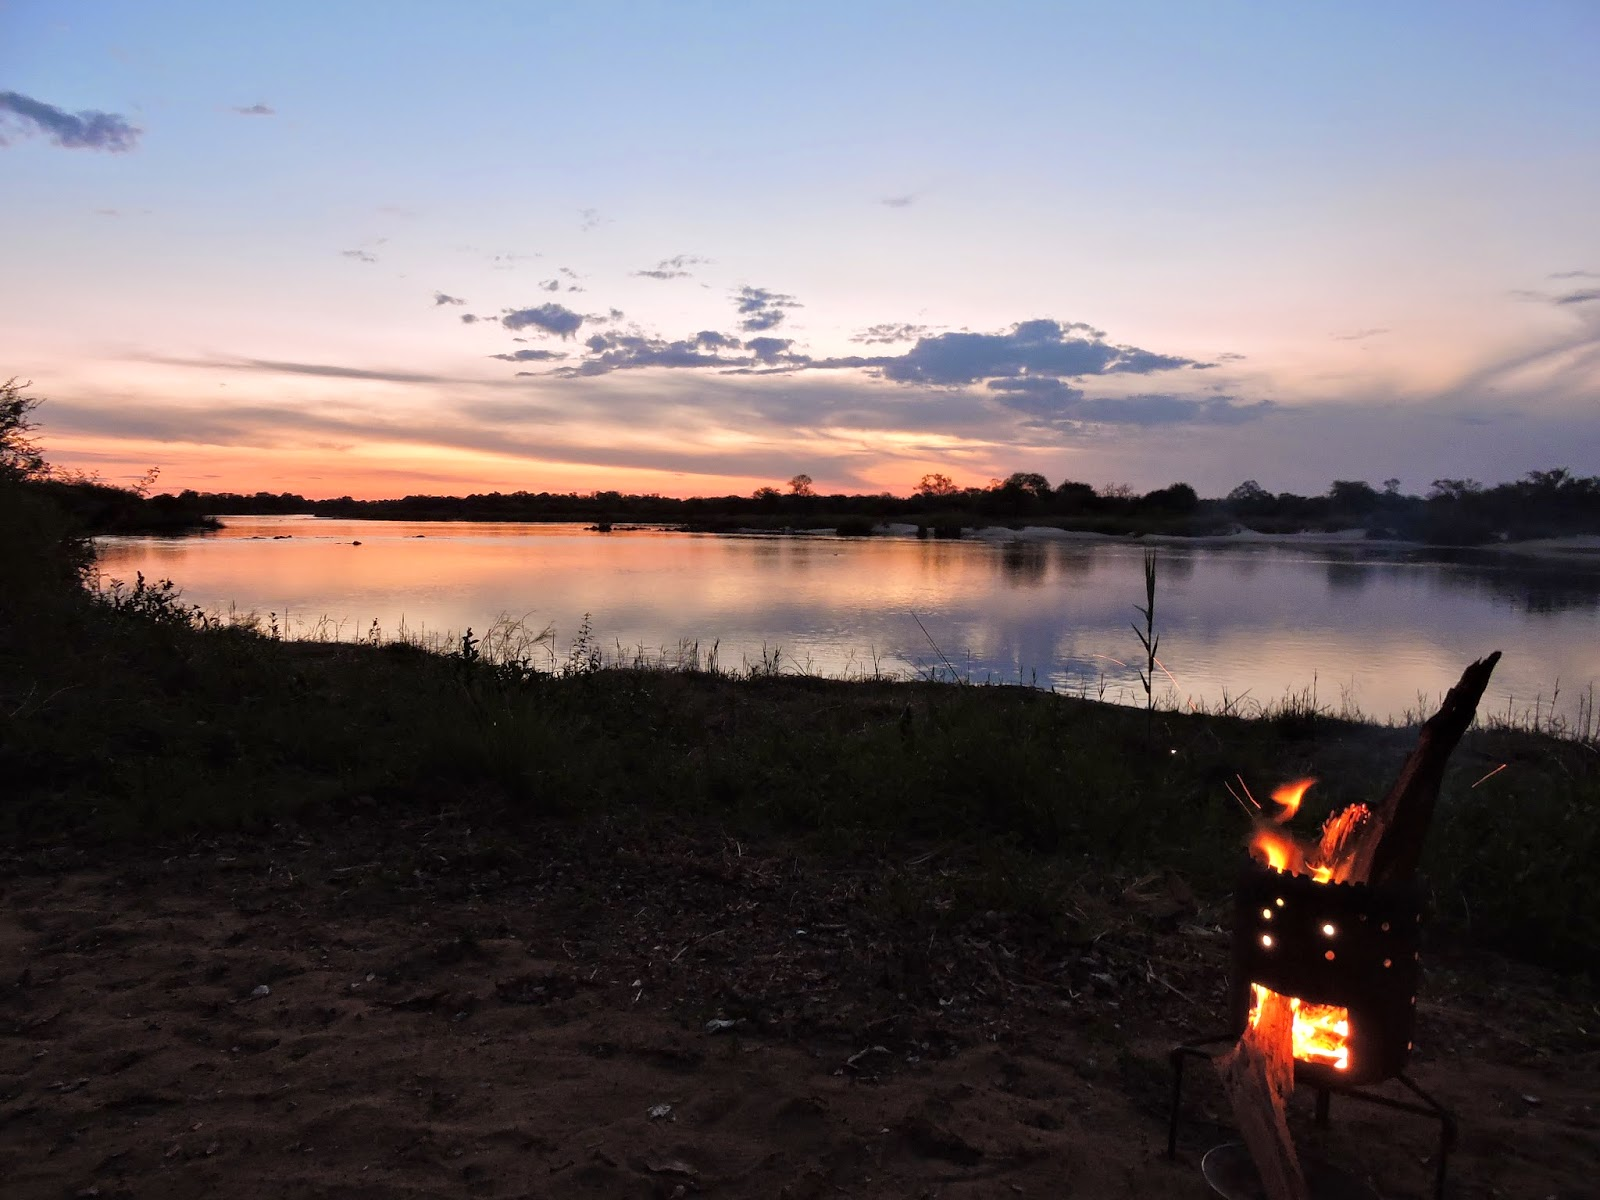 The sun set over the Okavango River with our campfire visible nearby.